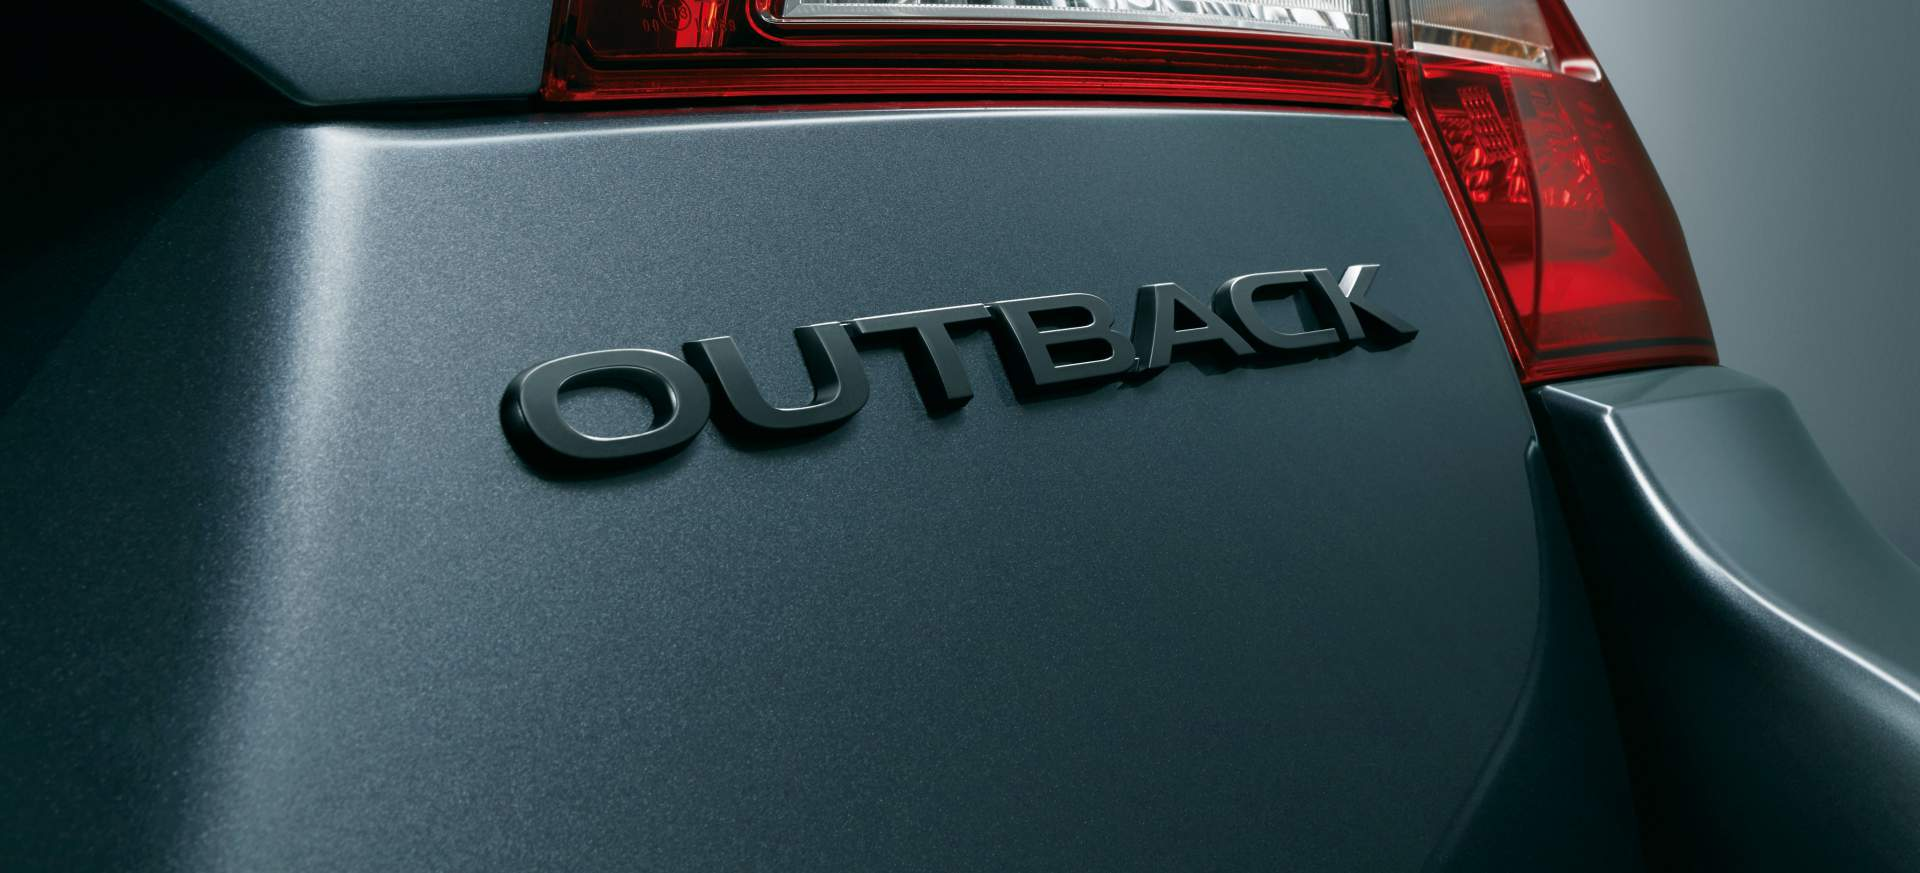 be9e0b6e-subaru-outback-x-break-5